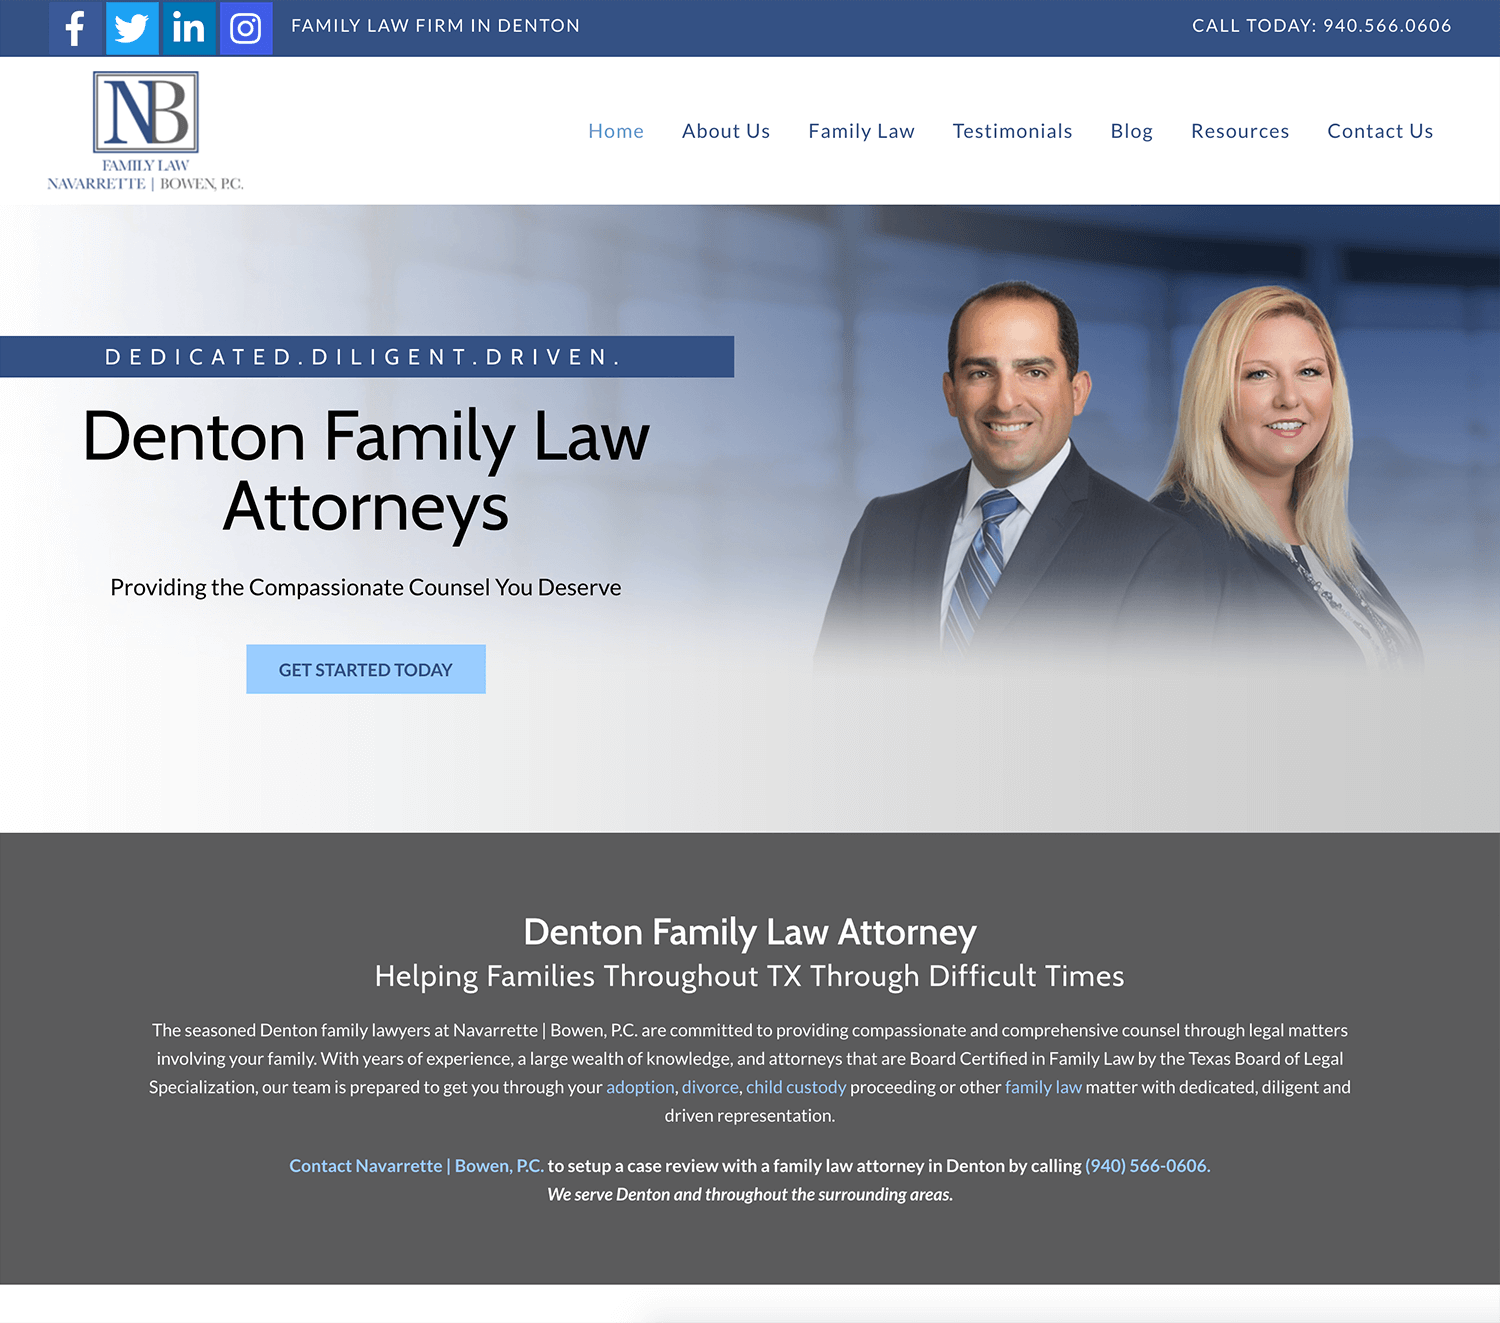 nb family law site>